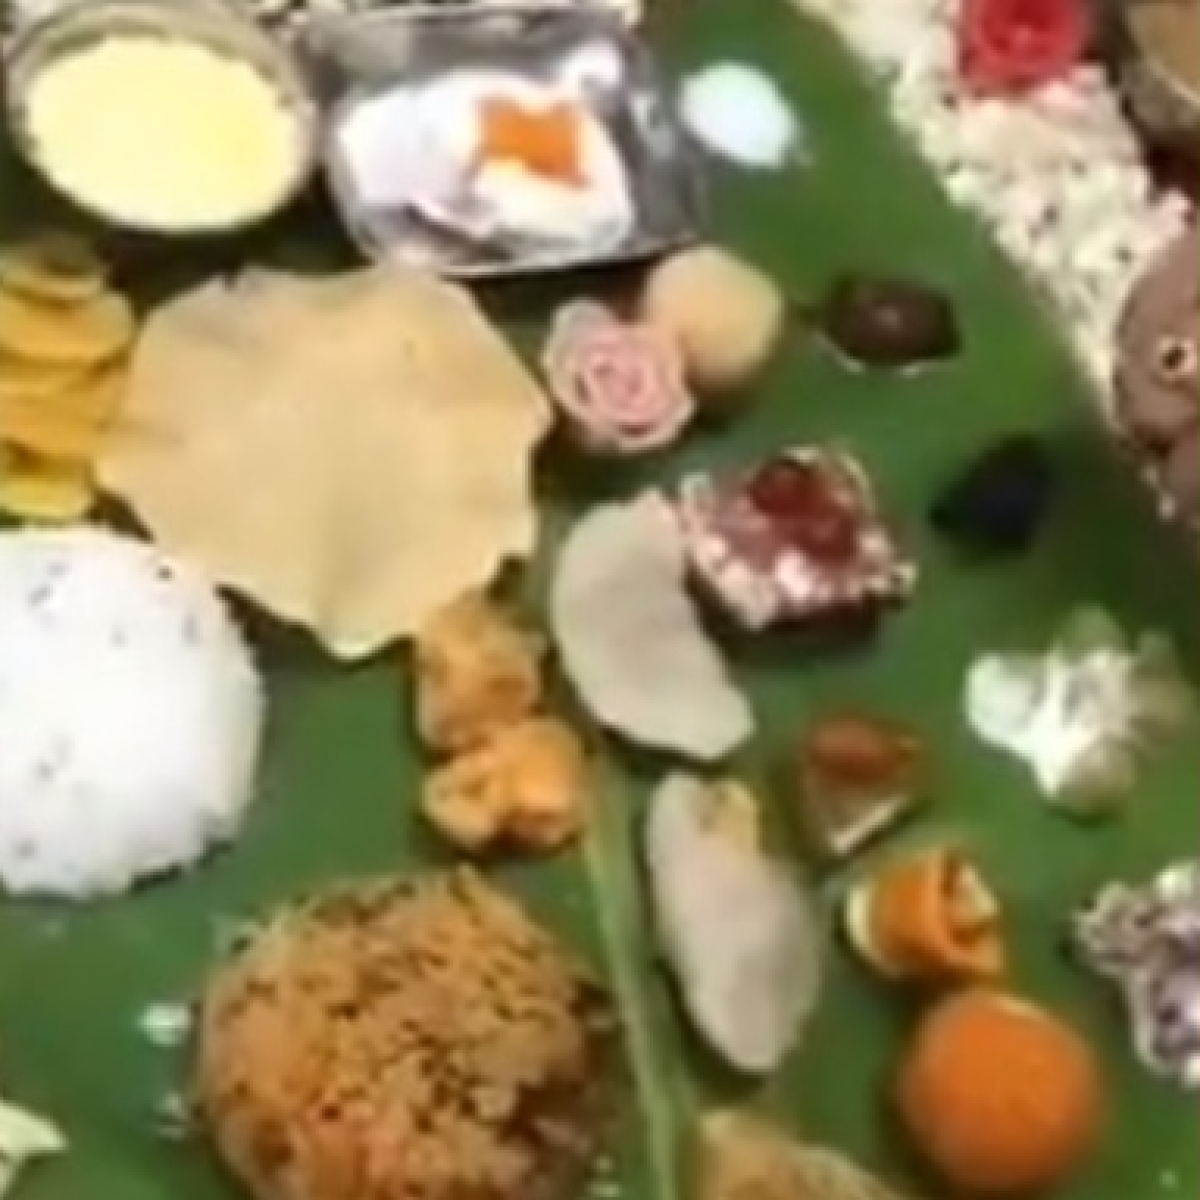 'Coming back in my next life as an Indian son-in-law': Andhra woman's 67-dish meal for 'Jamai Raja' has Twitter drooling